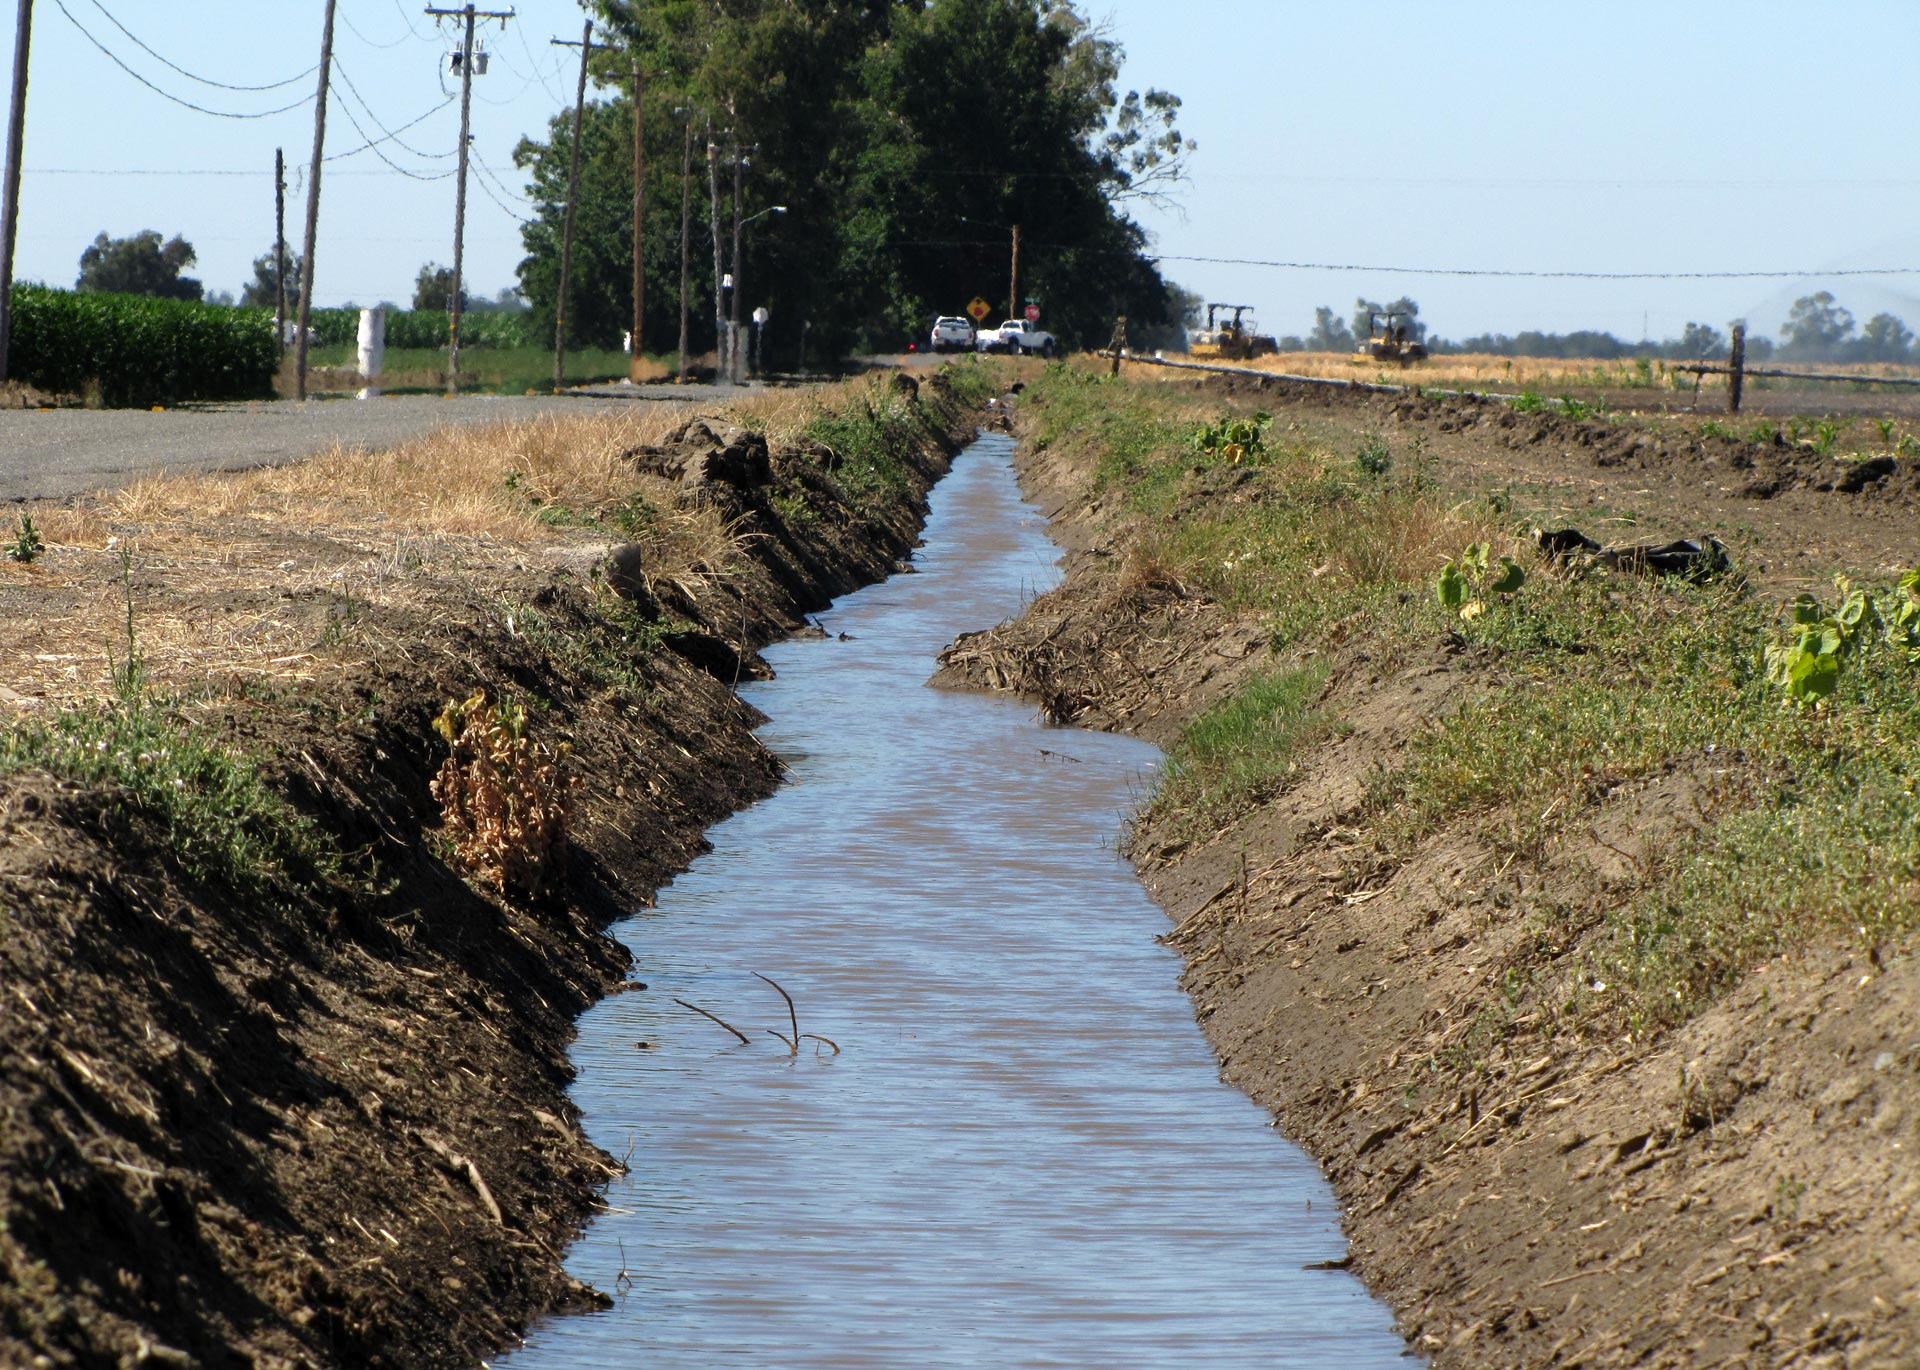 An irrigation ditch near the Solano County town of Dixon.